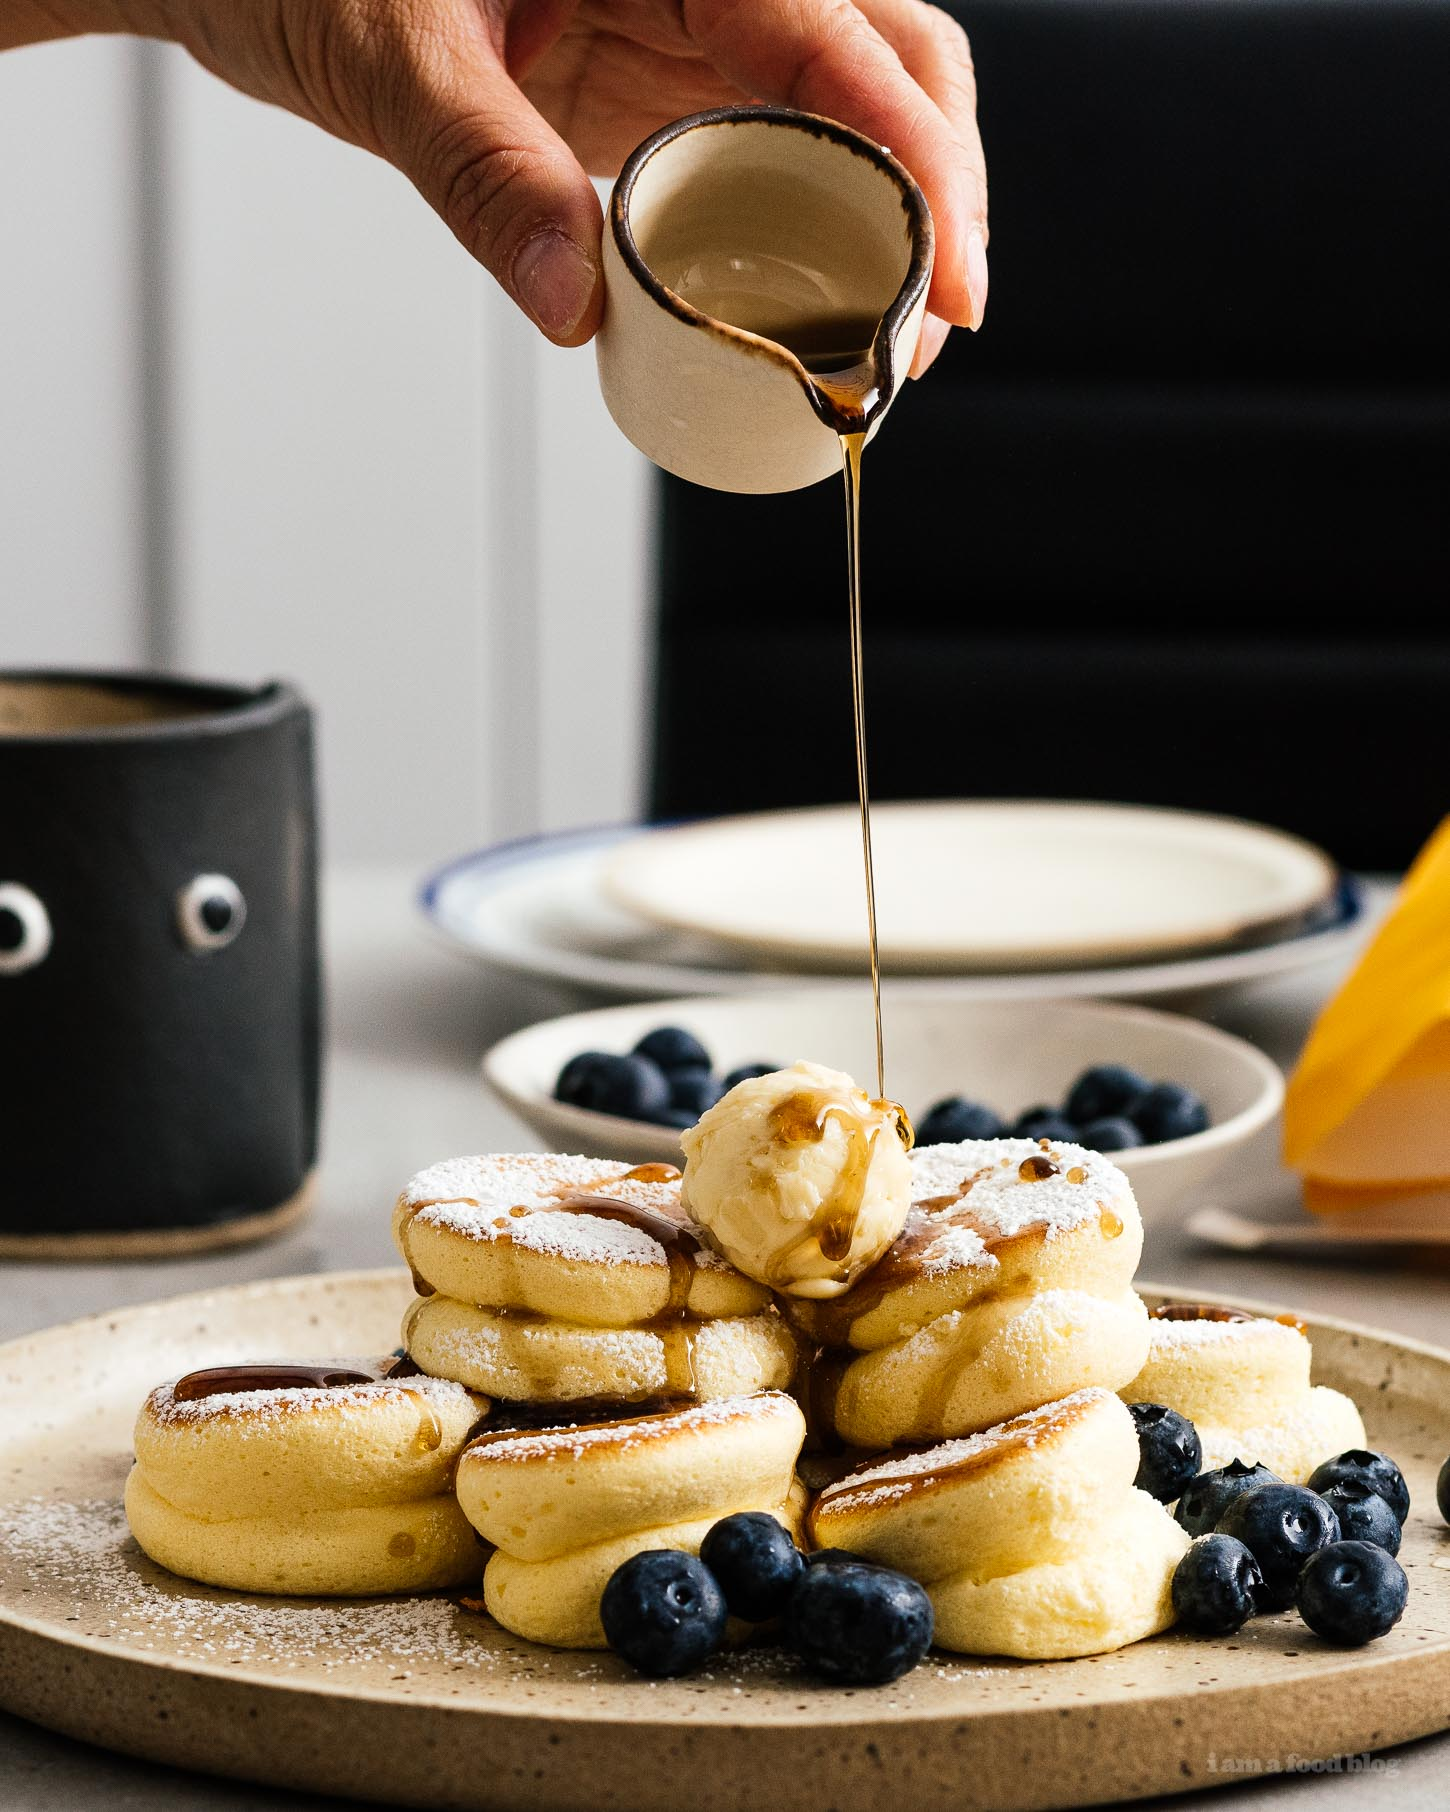 Mile High Mini Japanese Soufflé Pancakes Recipe | www.iamafoodblog.com